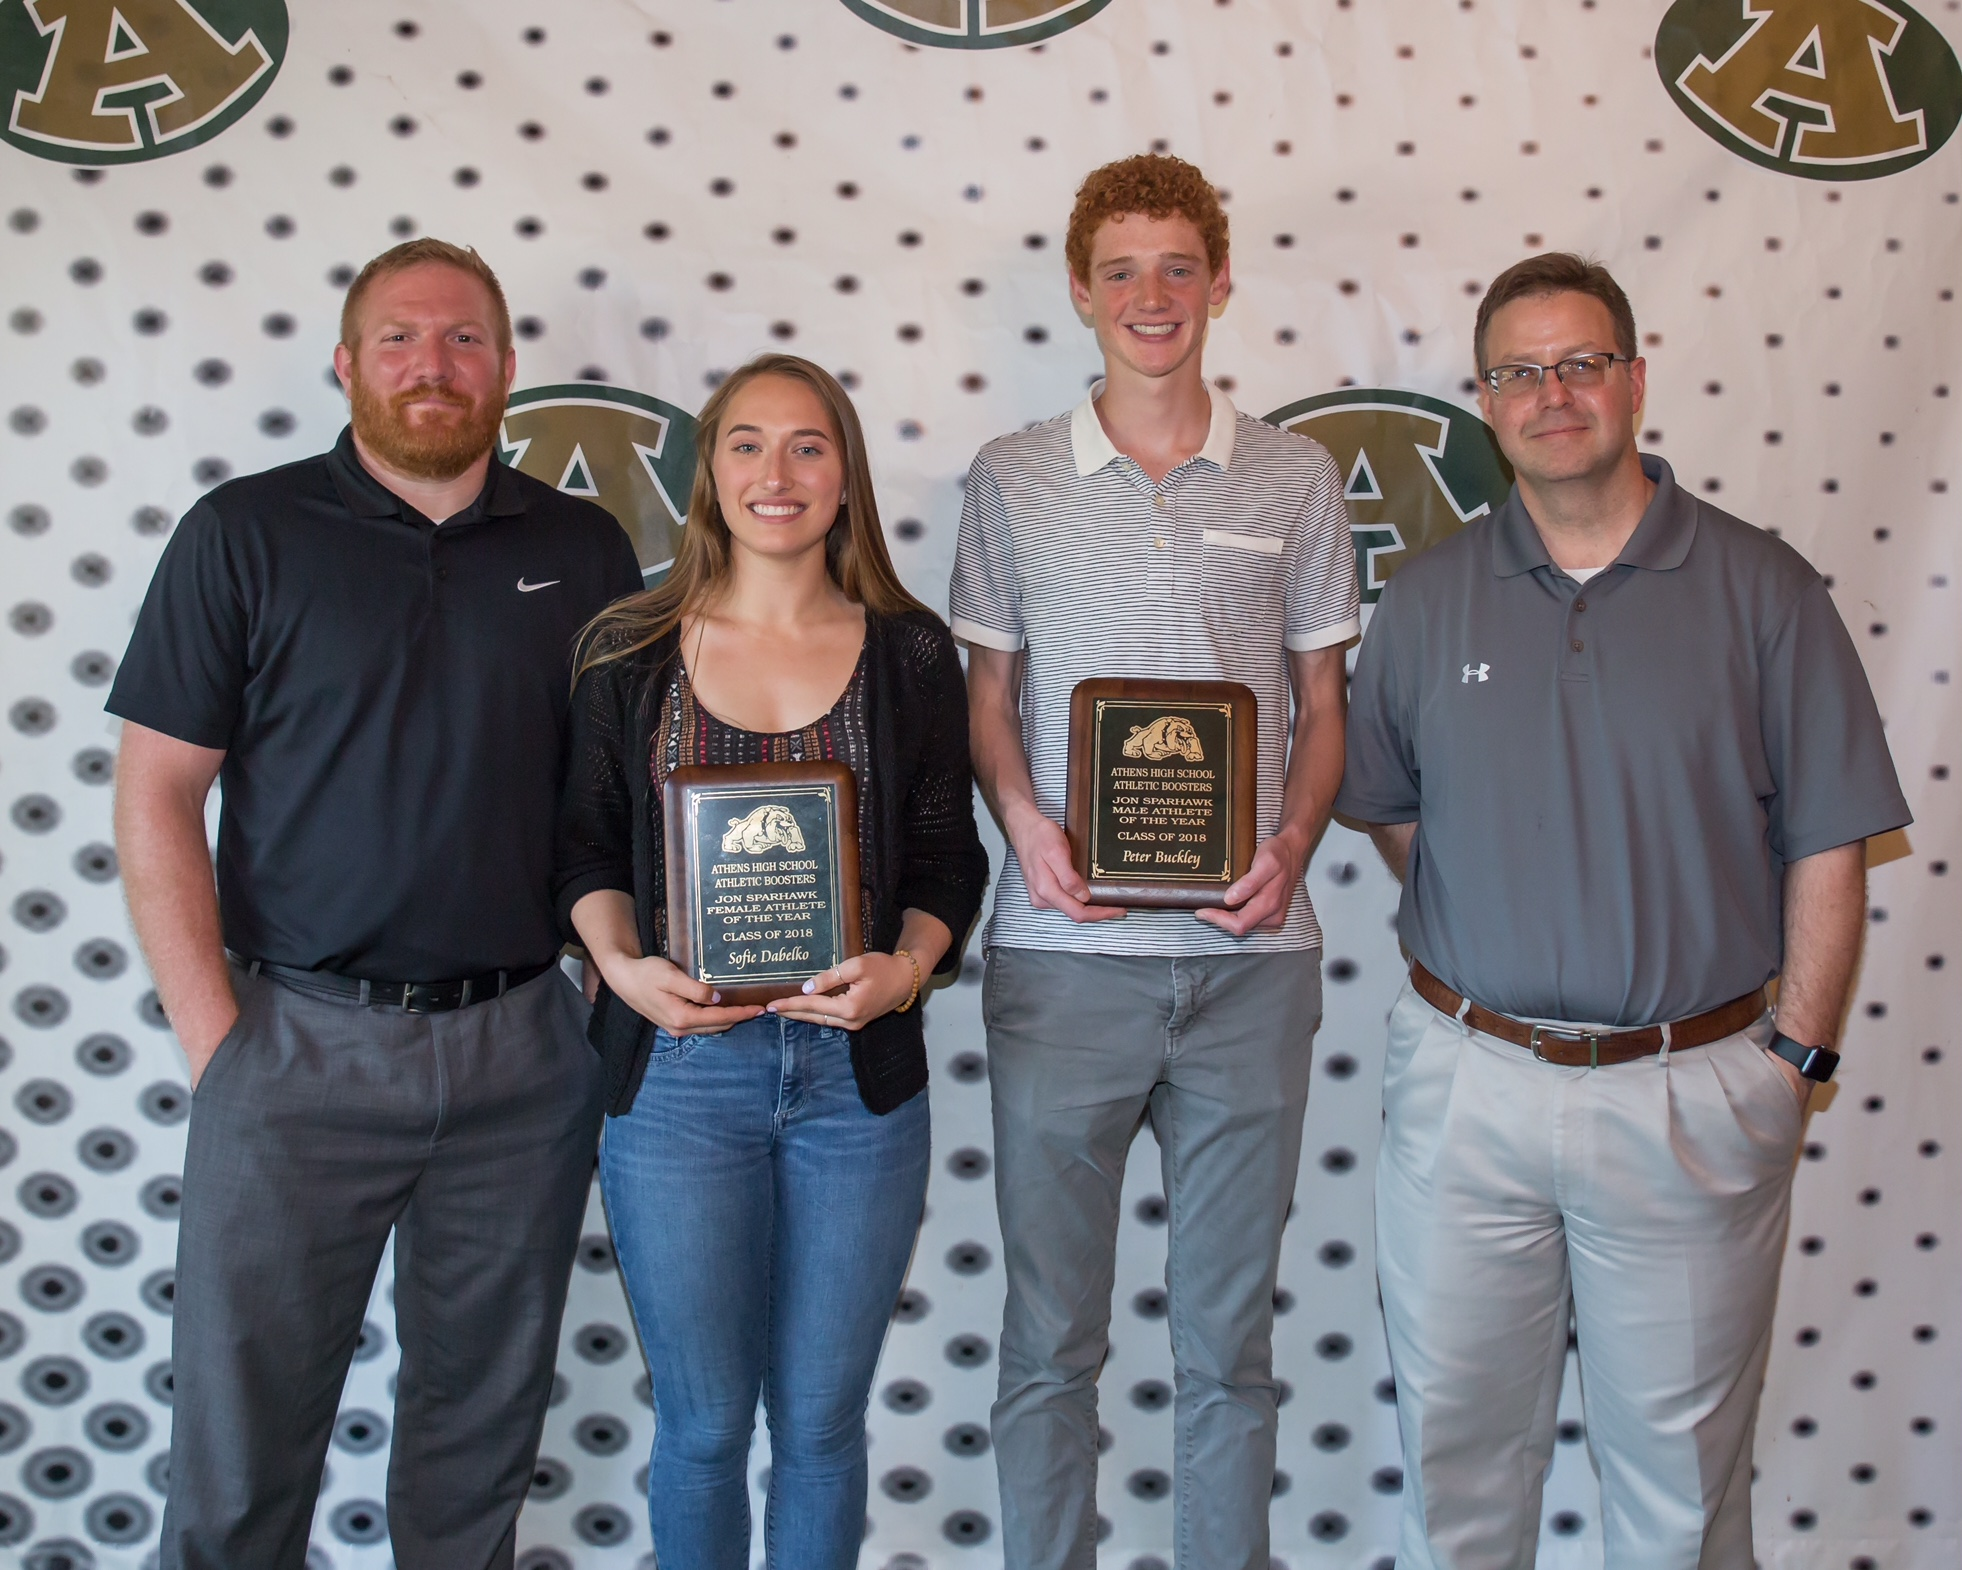 Outstanding Senior Athletes of the Year